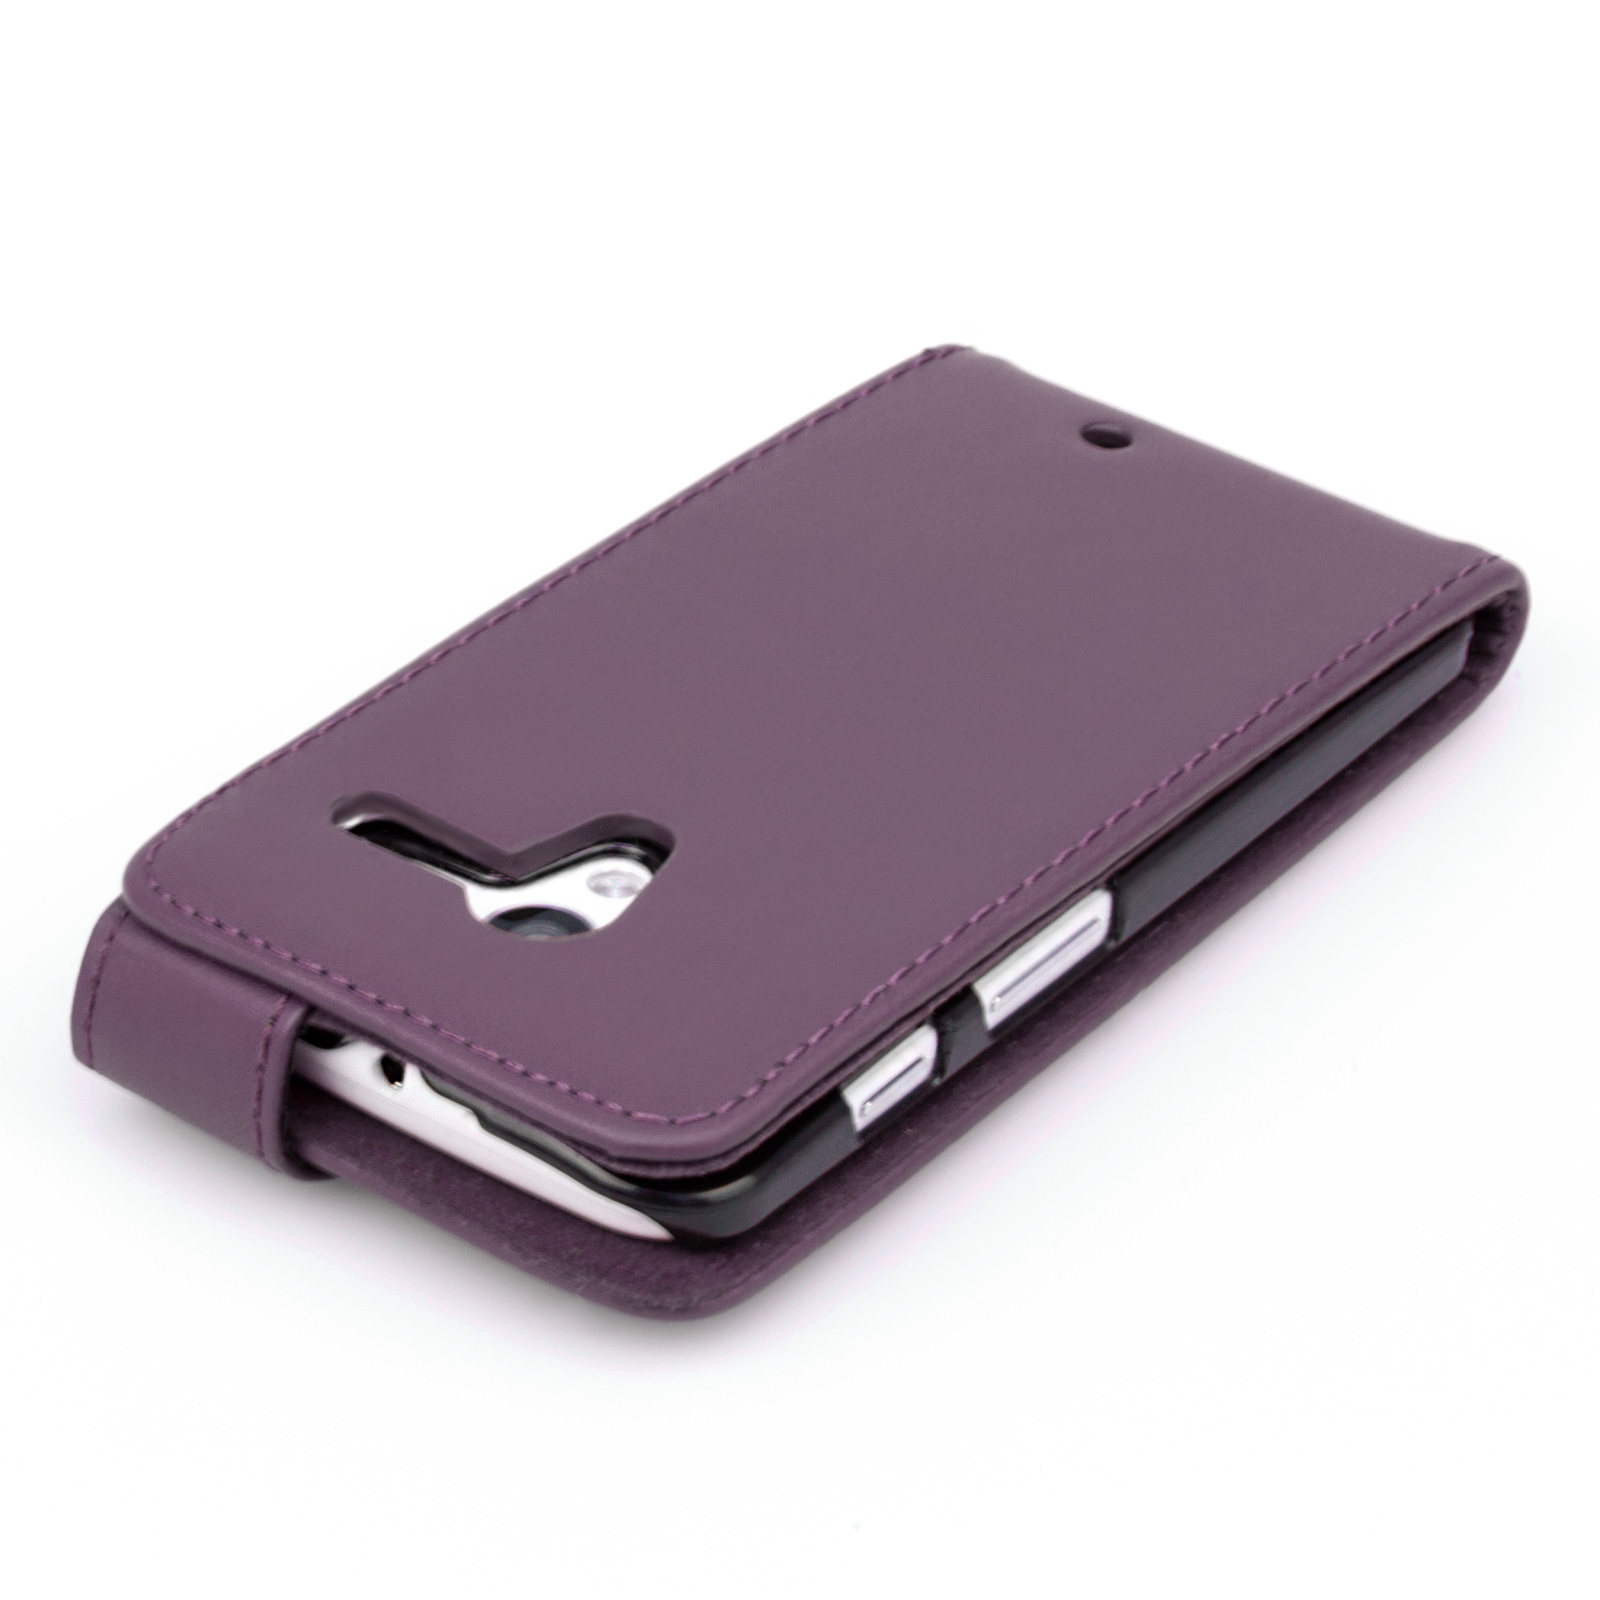 YouSave Accessories Motorola Moto X Leather-Effect Flip Case - Purple